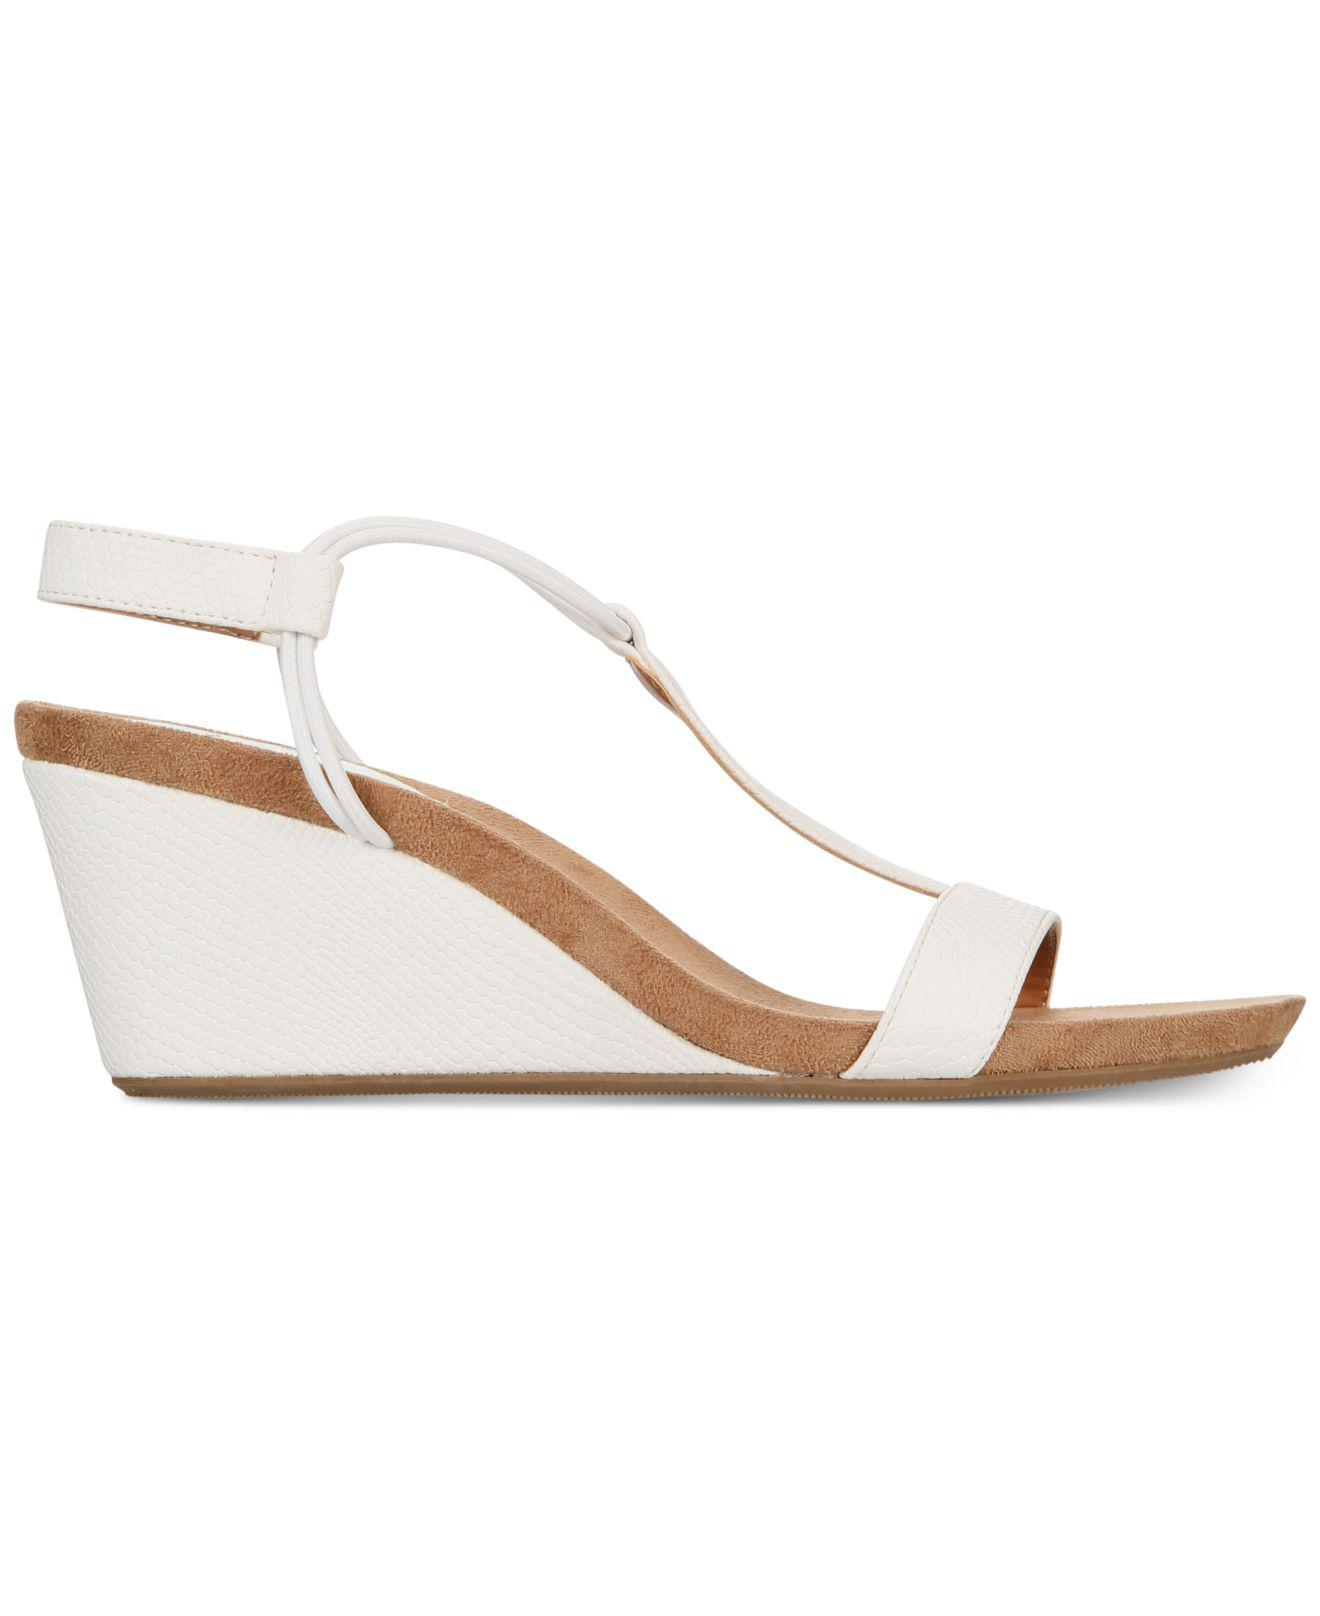 aab0228bf02c6 Style   Co. Mulan Wedge Sandals in White - Save 21% - Lyst